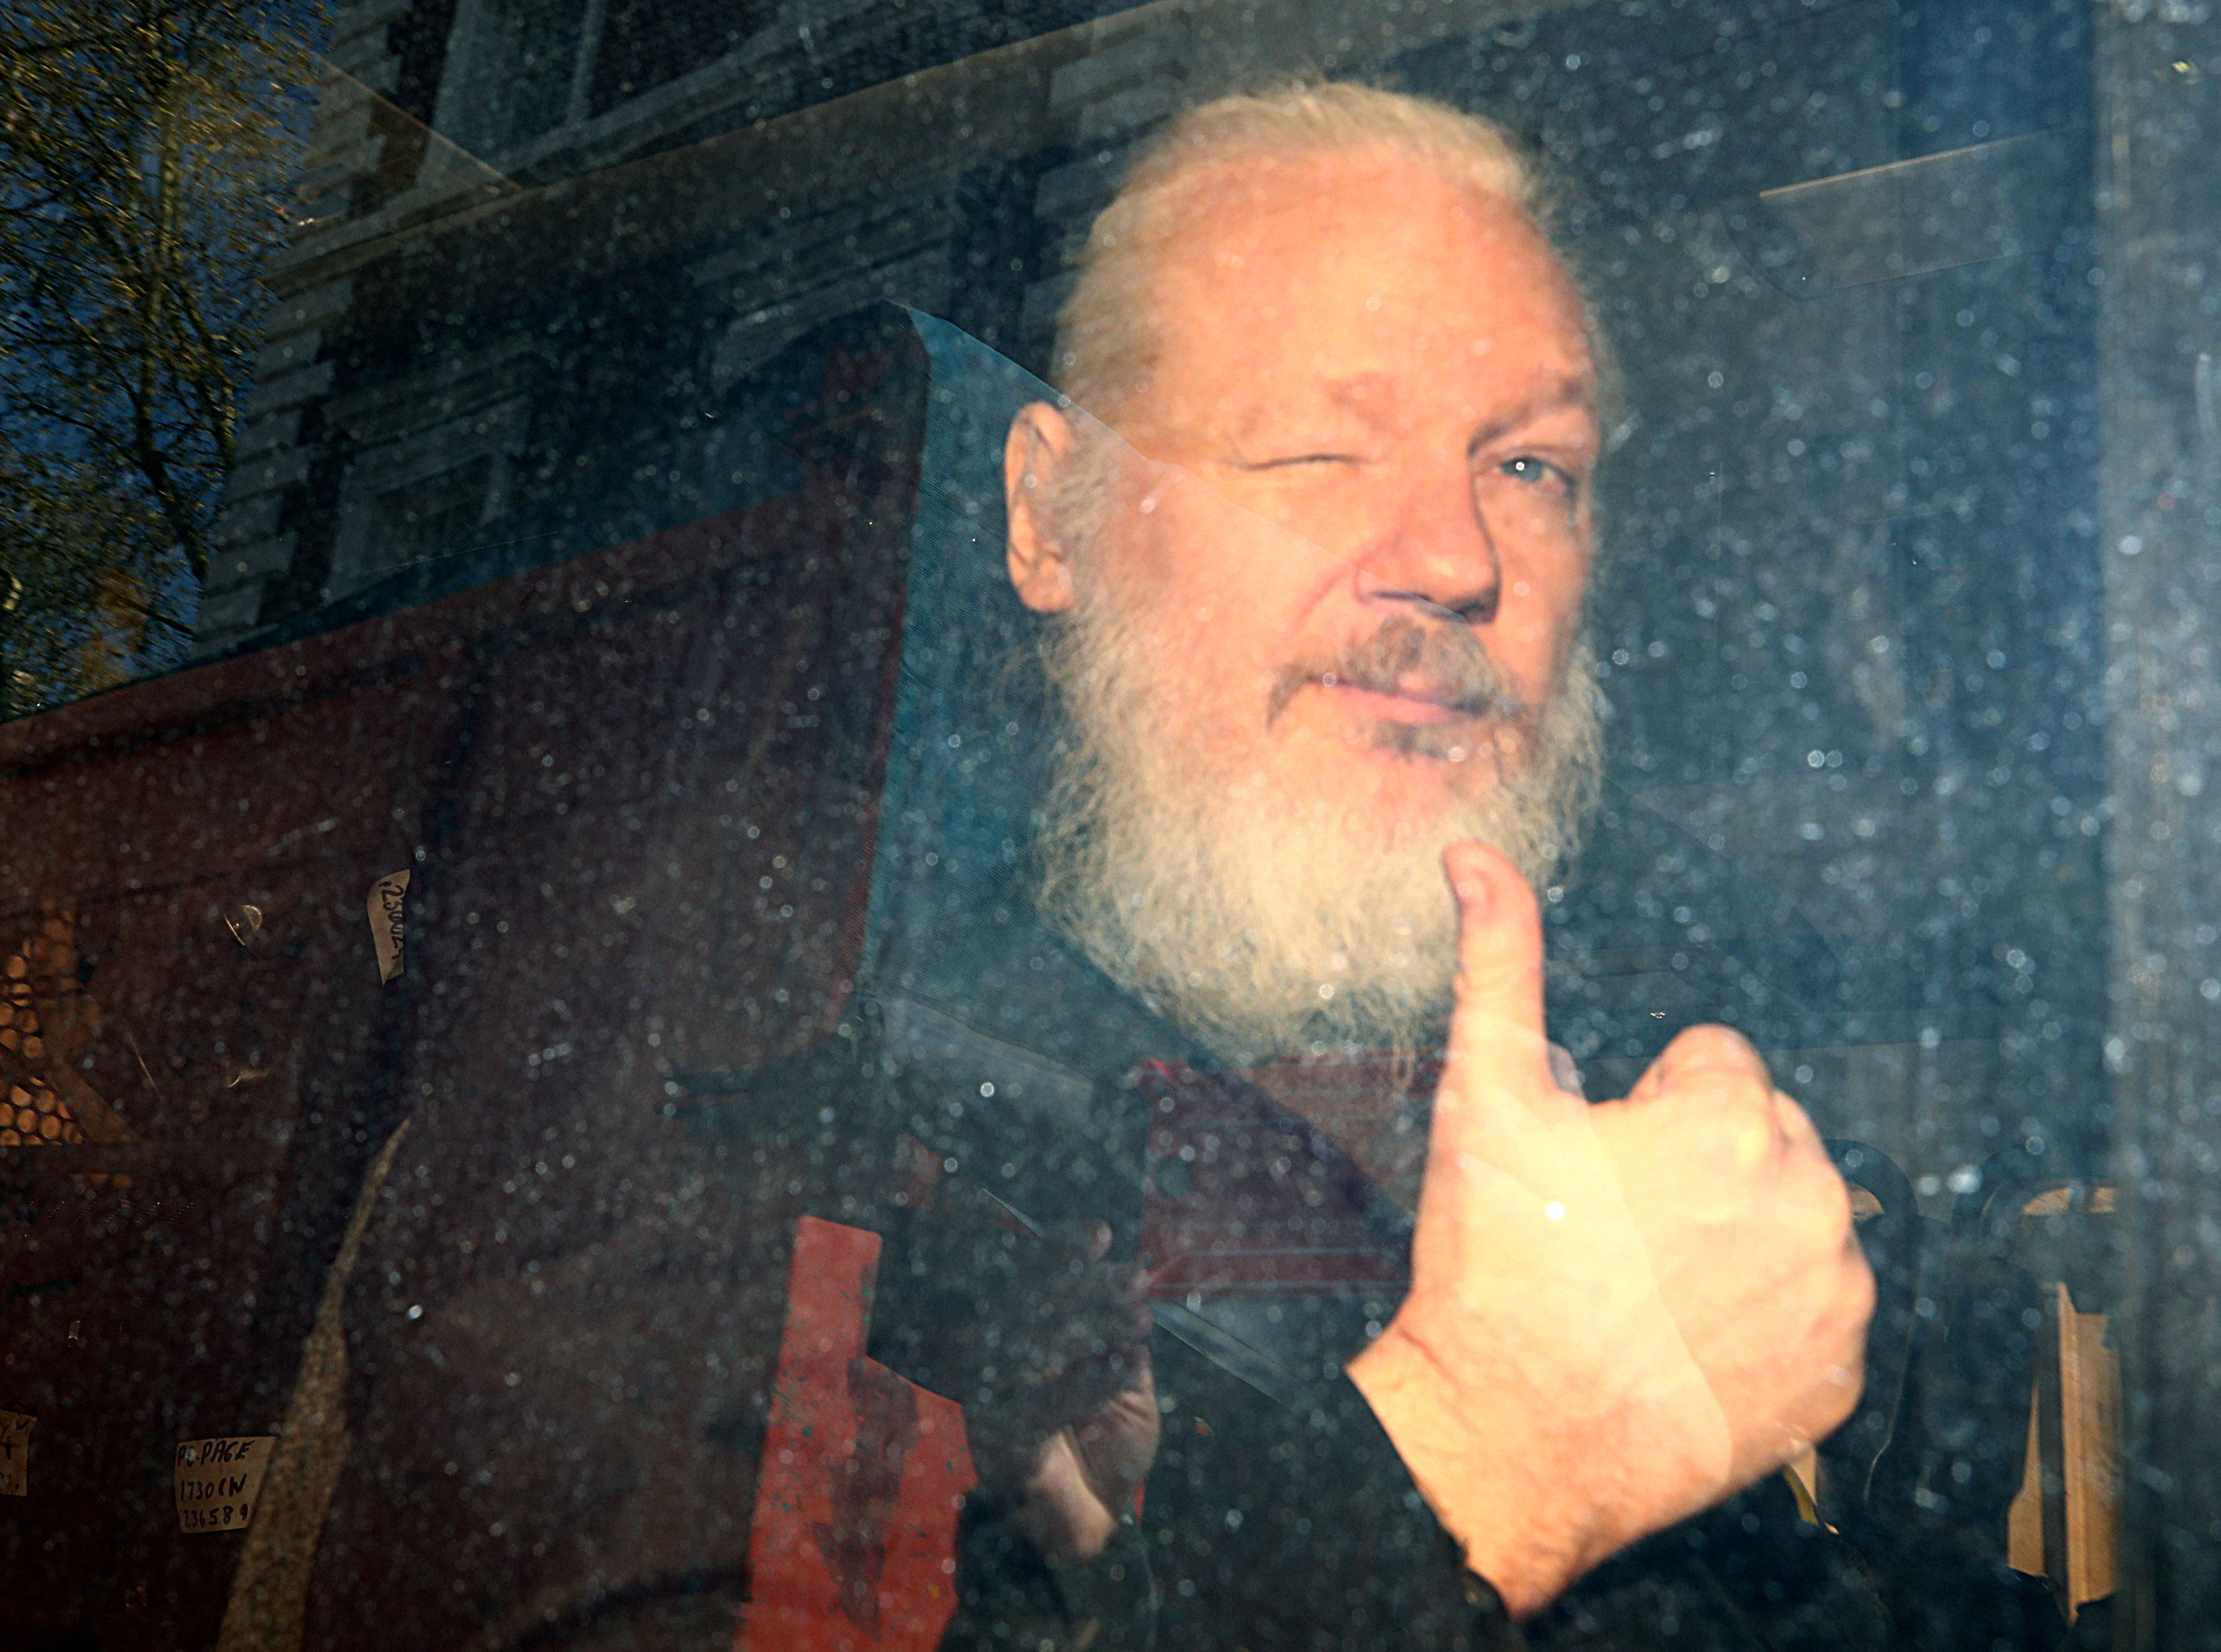 Julian Assange's Arrest An Attack On Press Freedom, Say Arundhati Roy, Indira Jaising And